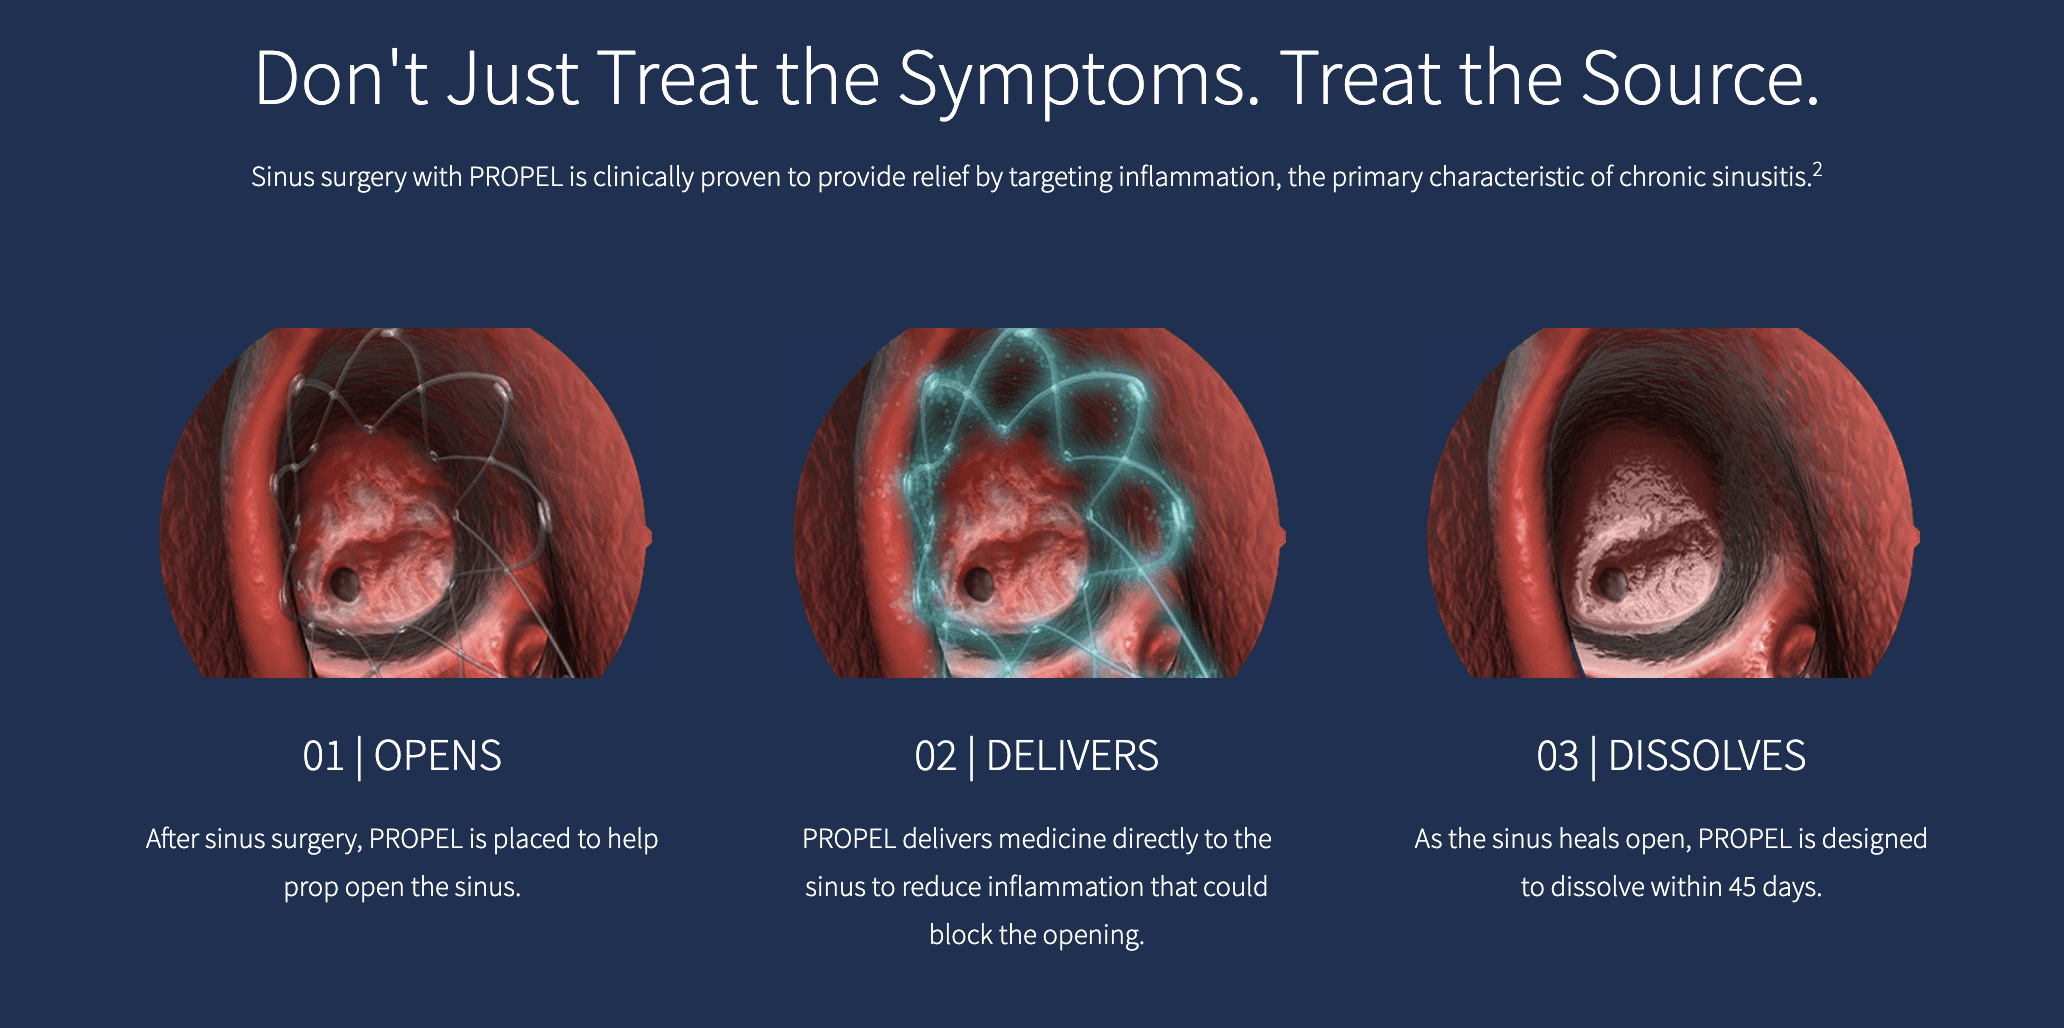 Don't Just Treat the Symptoms. Treat the Source.